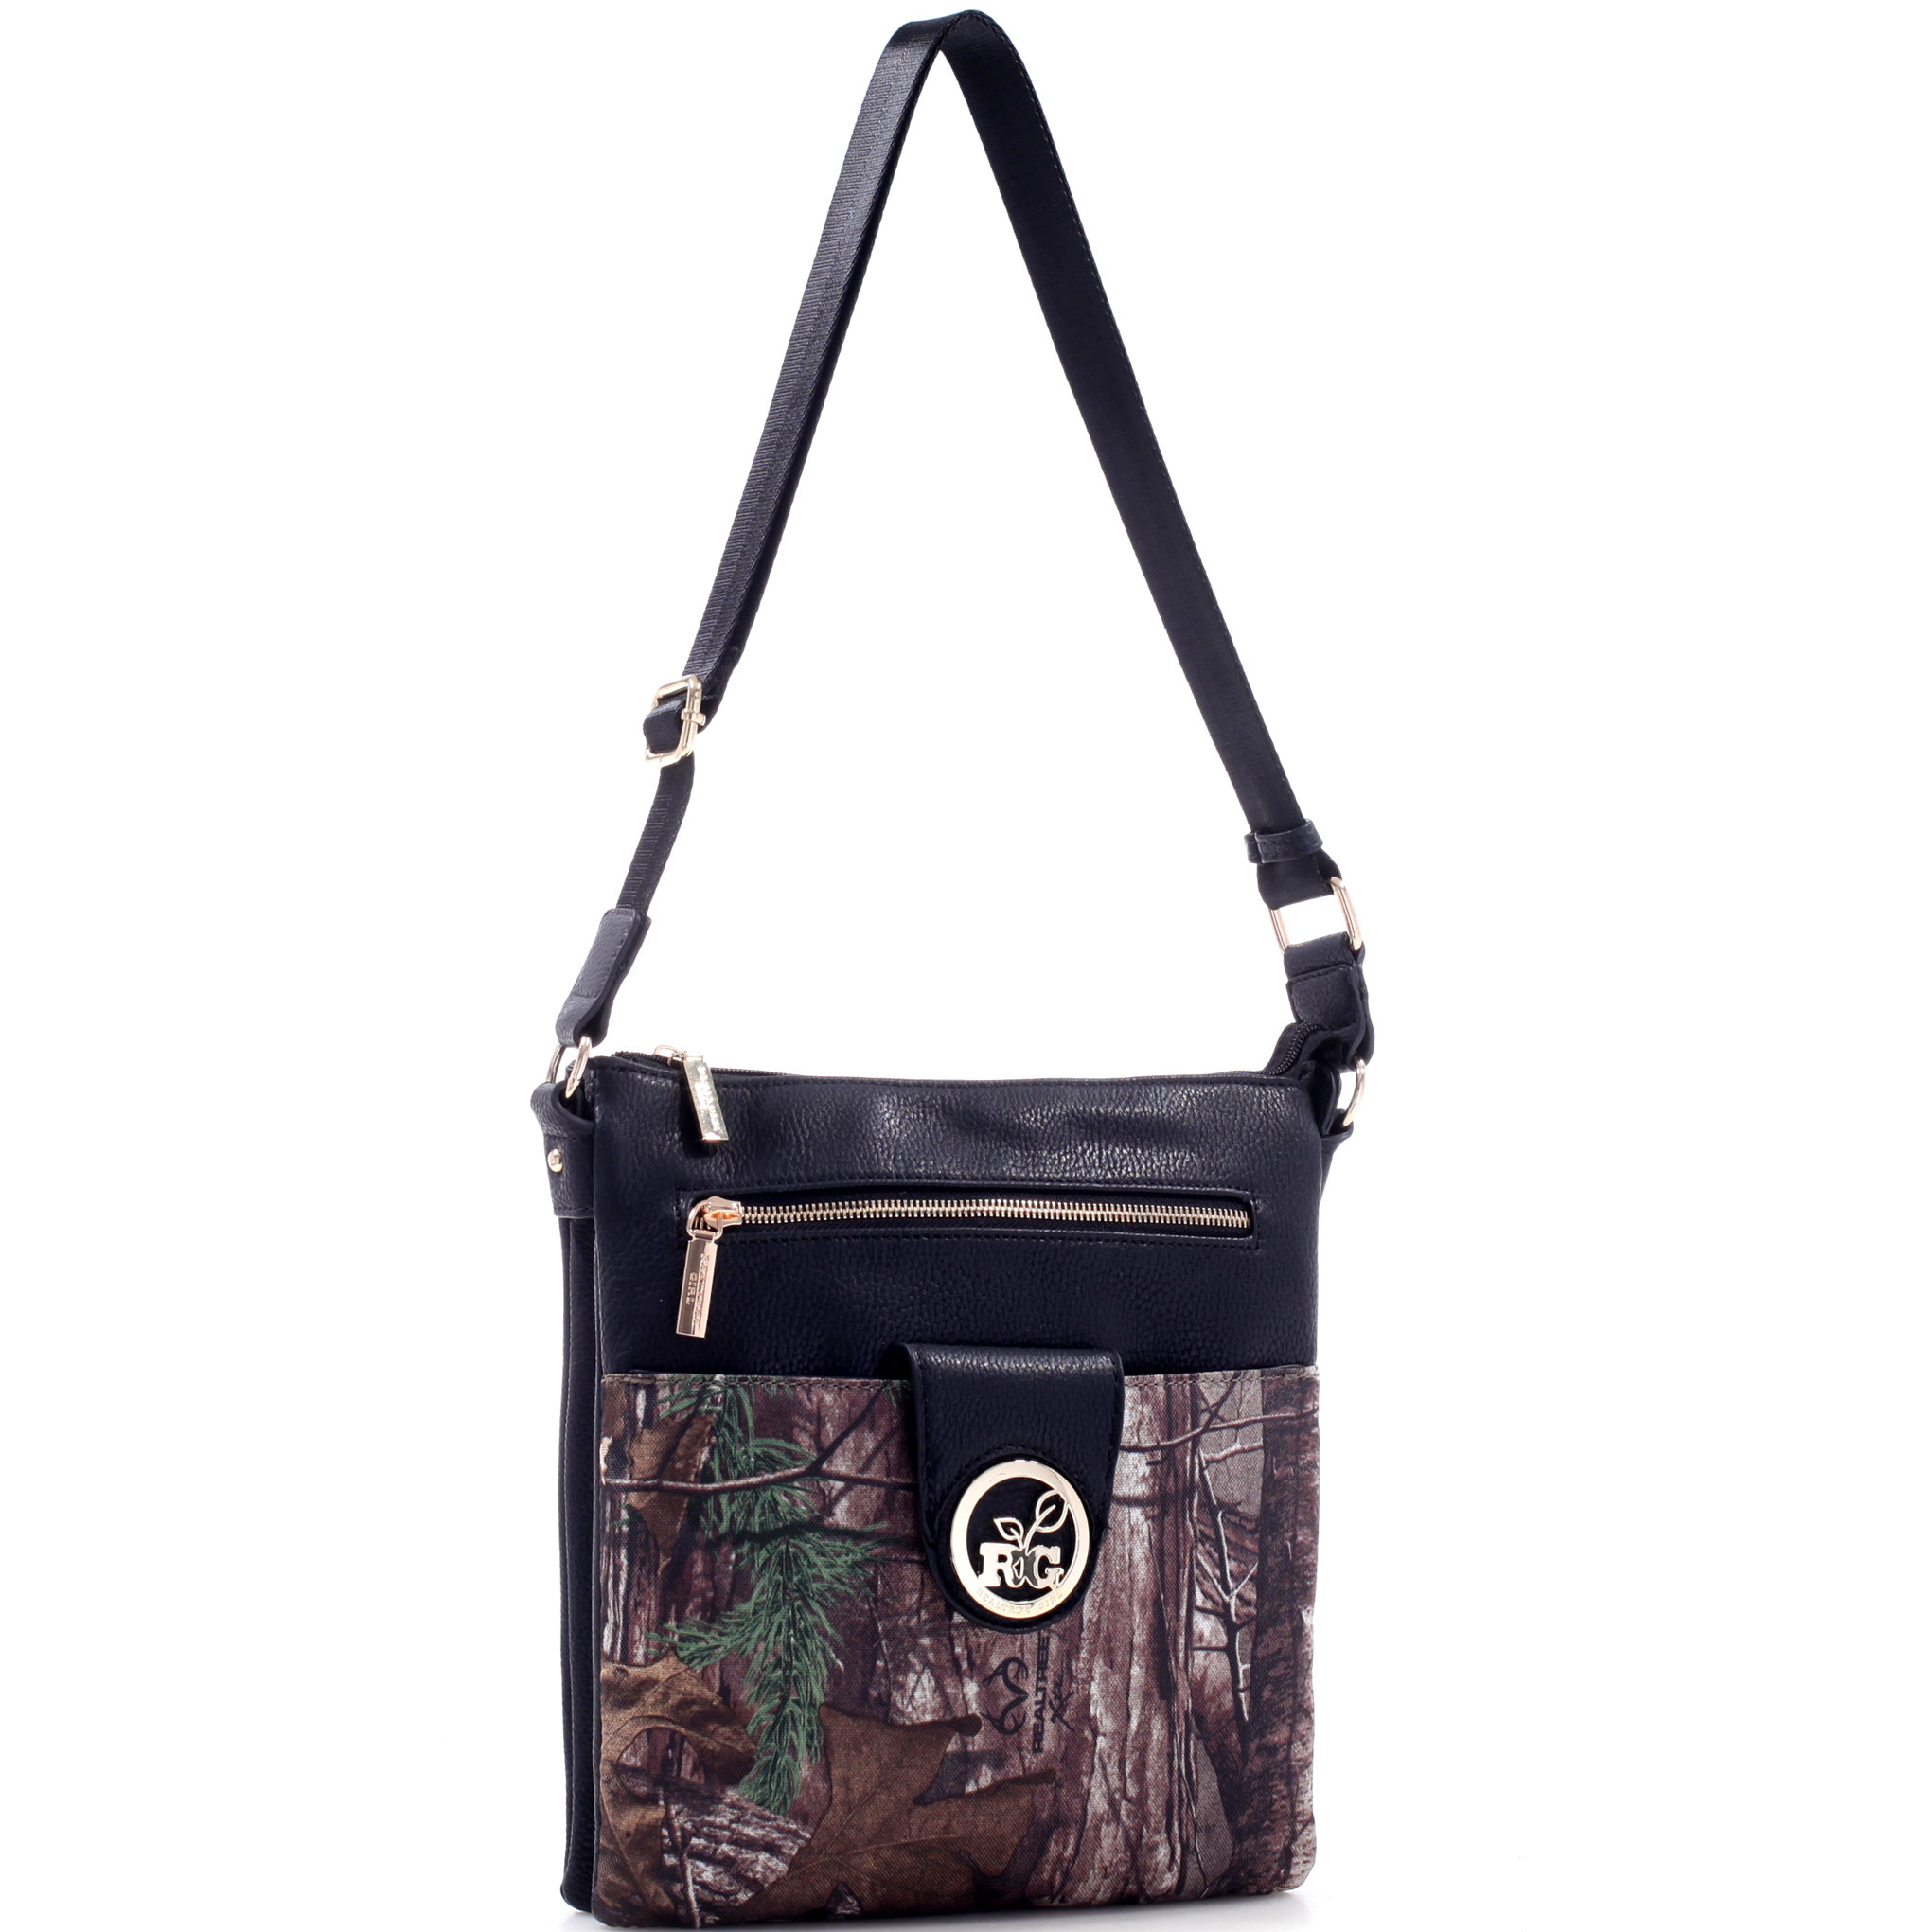 Realtree® Girl Multi-Compartment Crossbody Messenger Bag